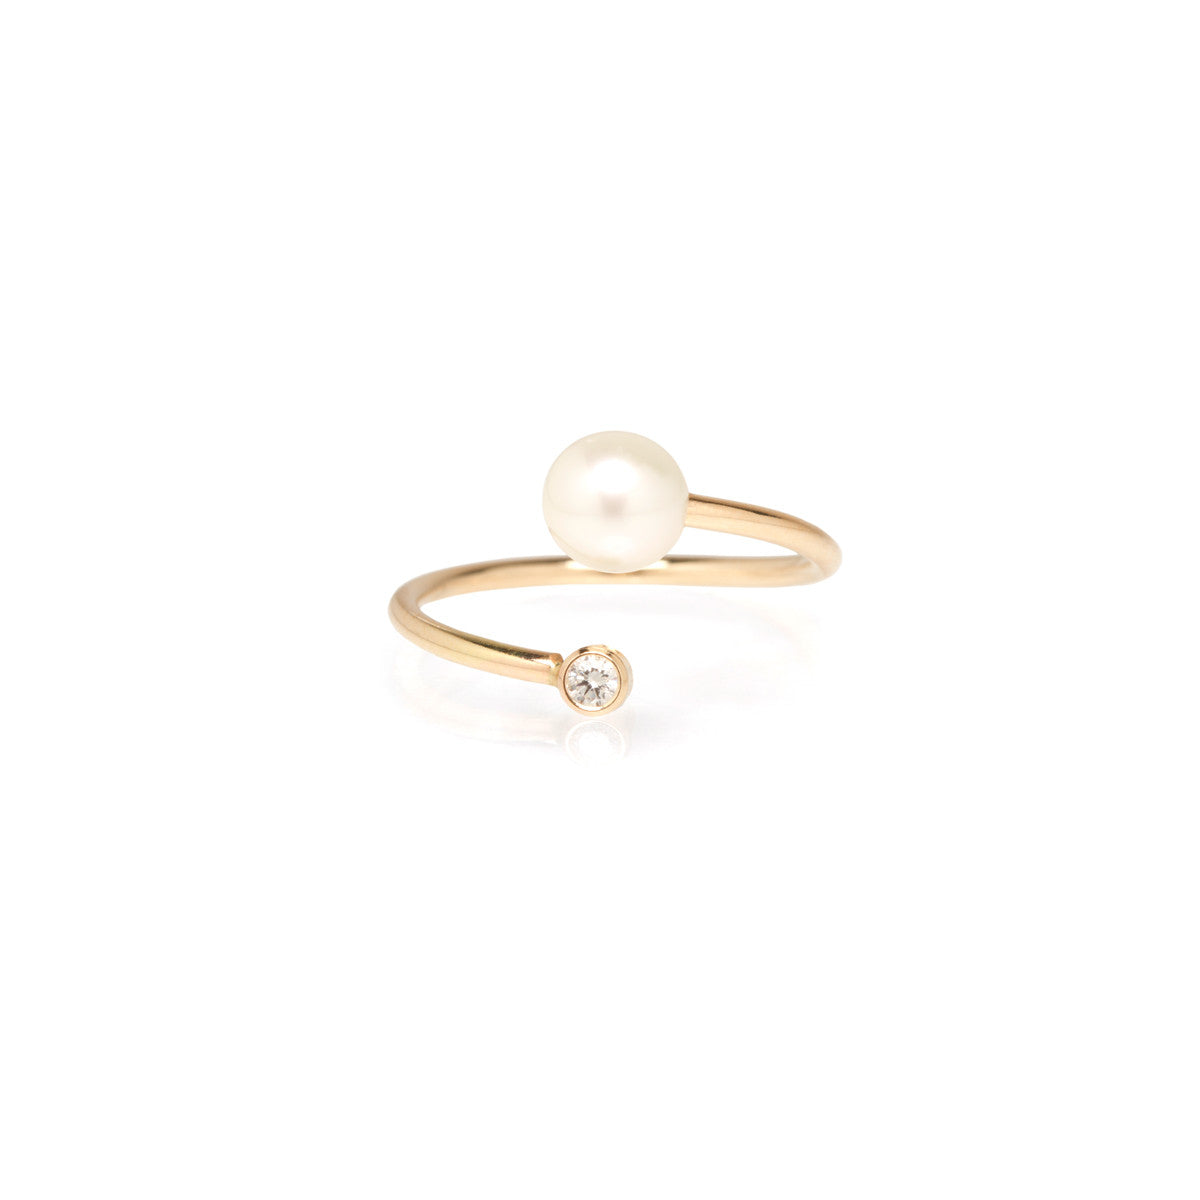 Zoë Chicco 14K Gold Pearl & Diamond Bypass Ring Nsw4aWM